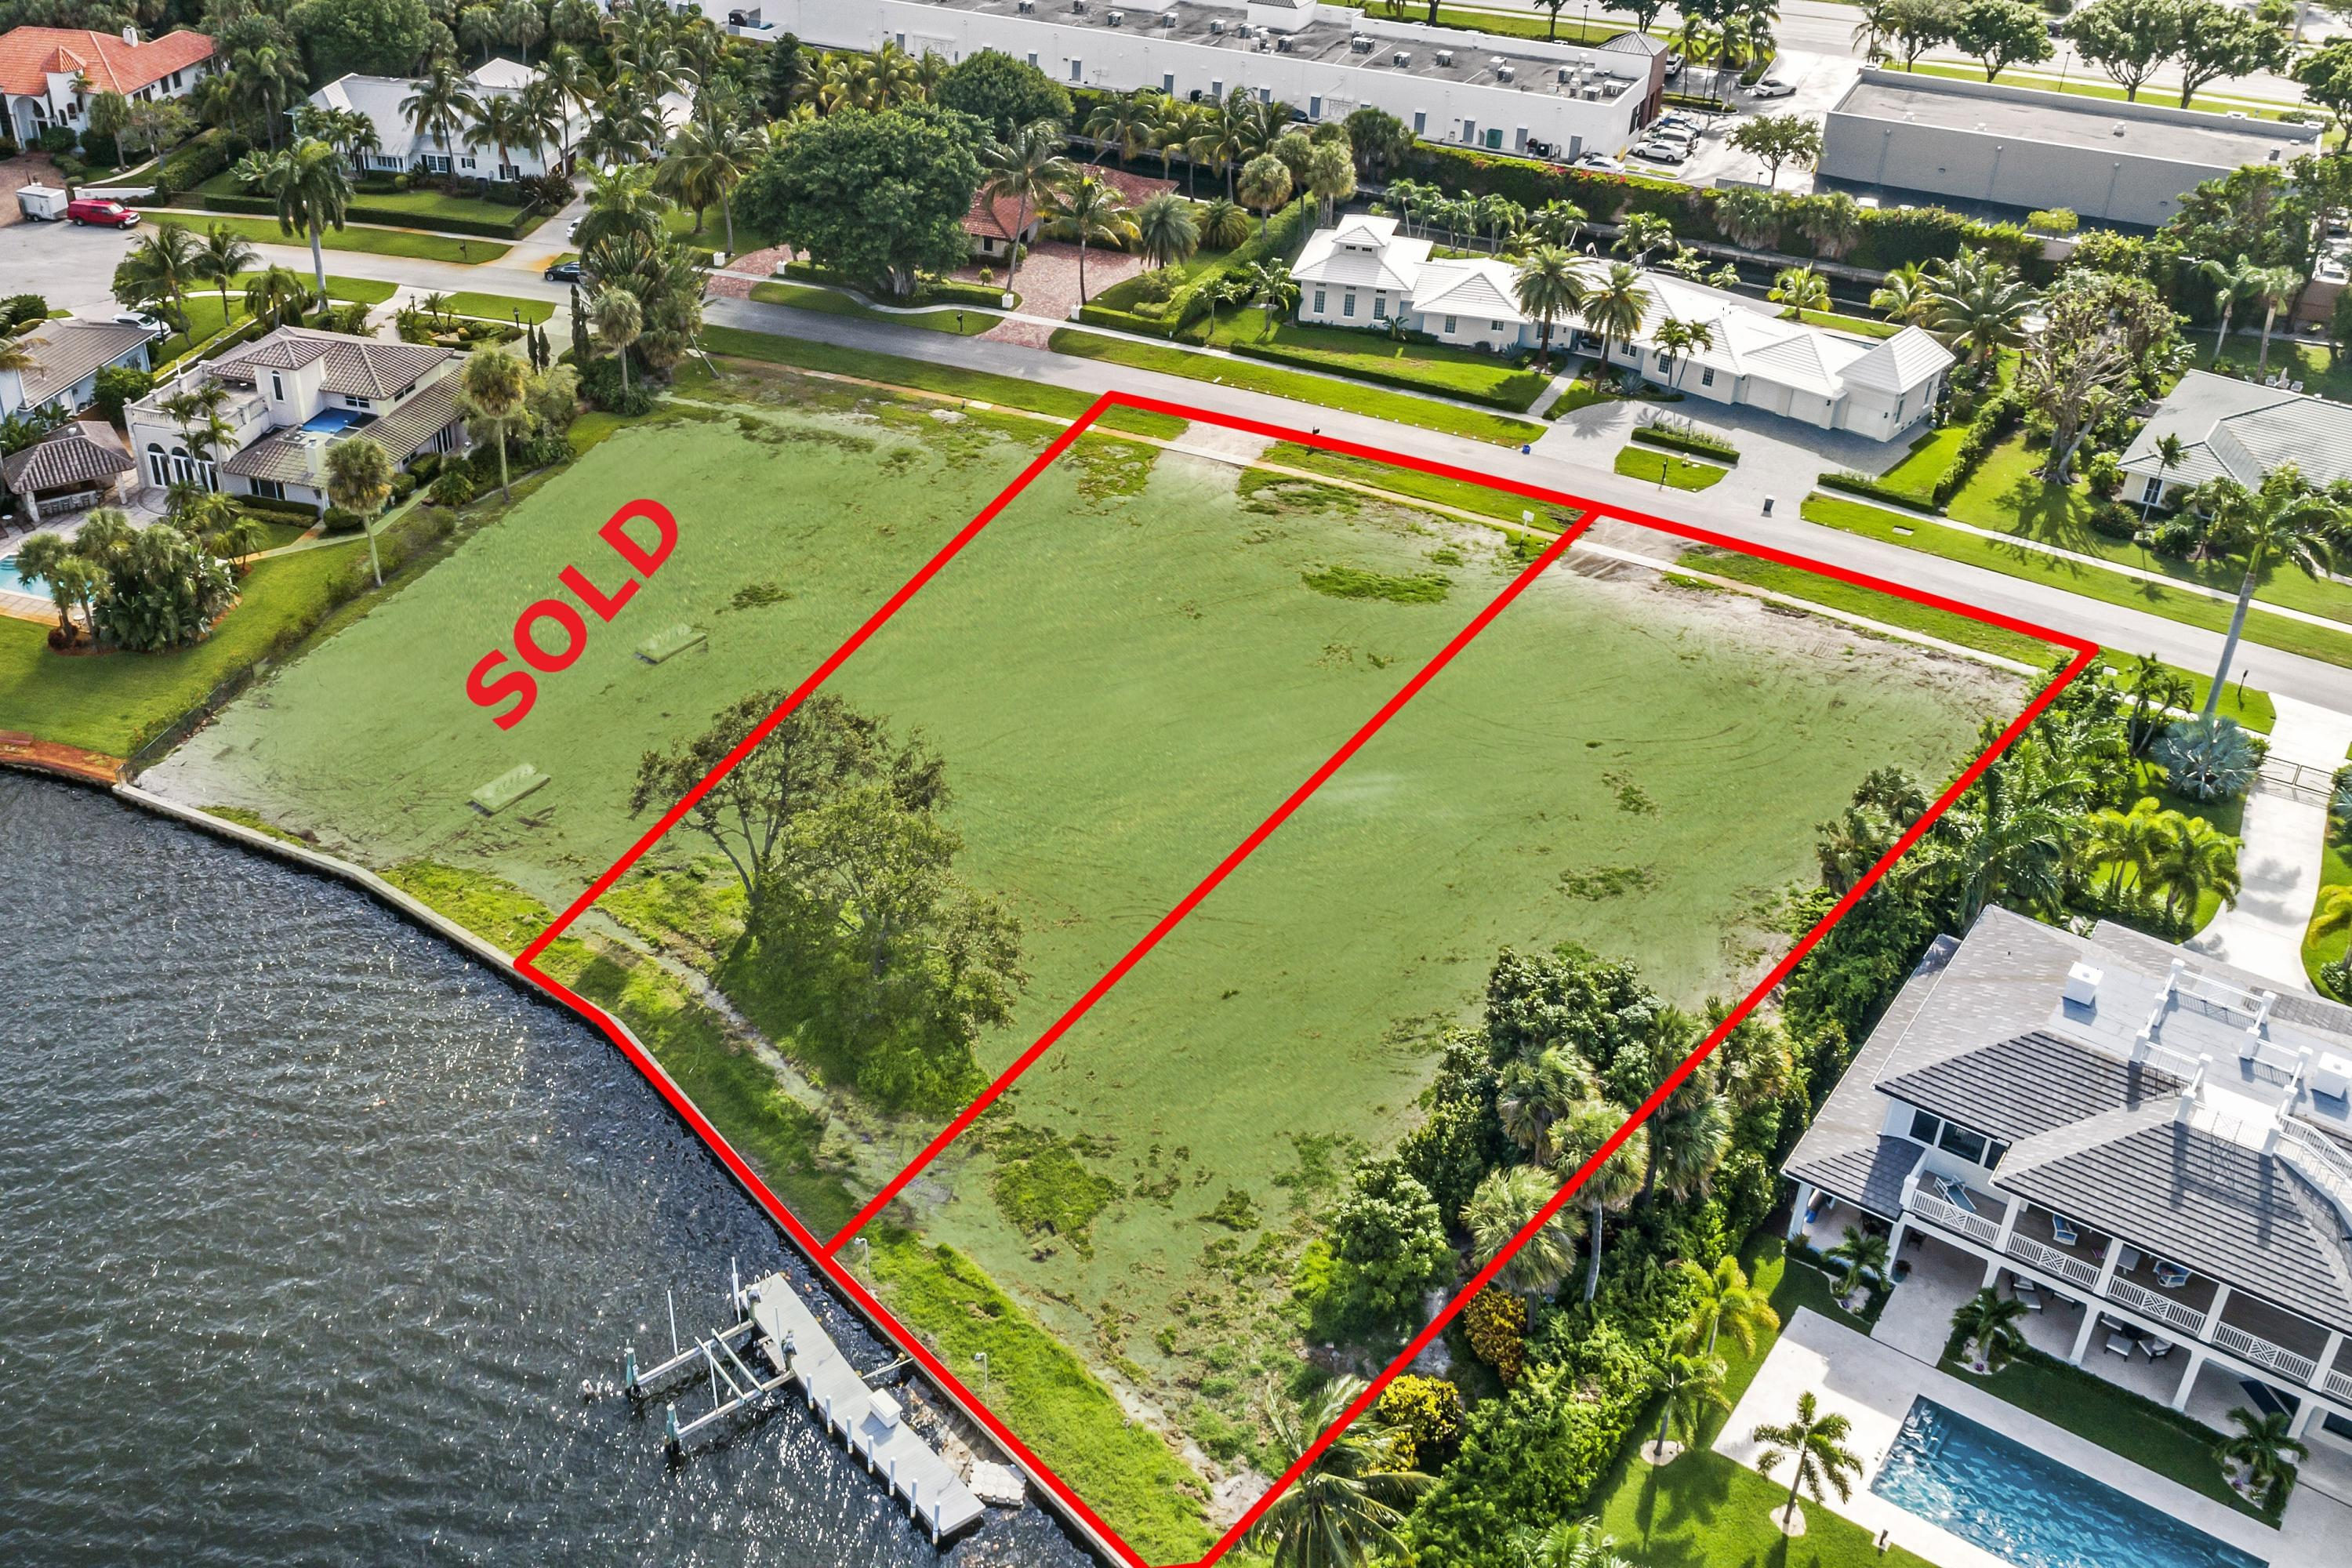 12096 Captains Landing(s), North Palm Beach, Florida 33408, ,C,Single family,Captains,RX-10504769